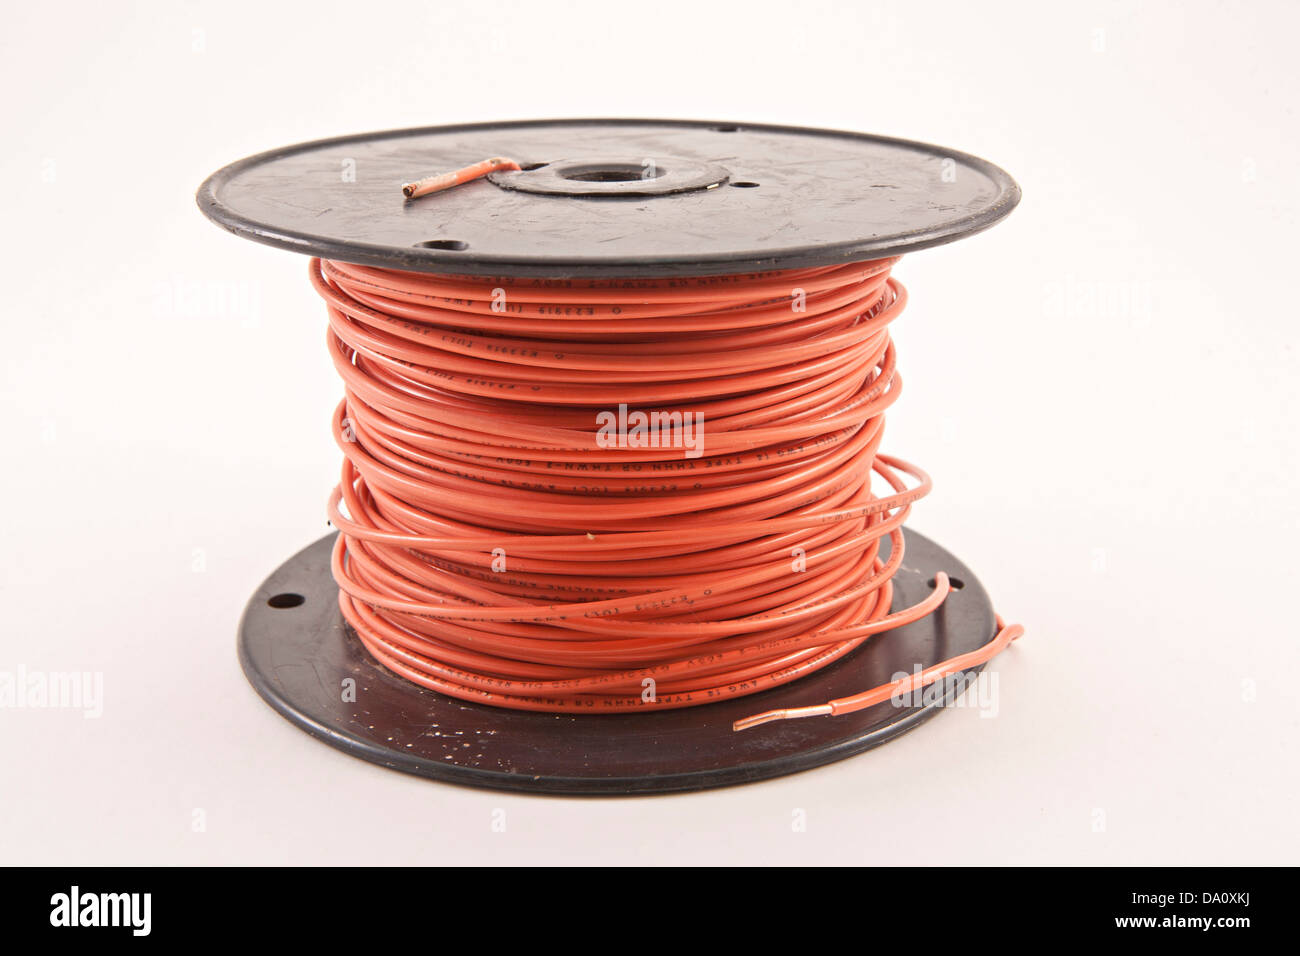 Insulated Copper Wire Stock Photos & Insulated Copper Wire Stock ...